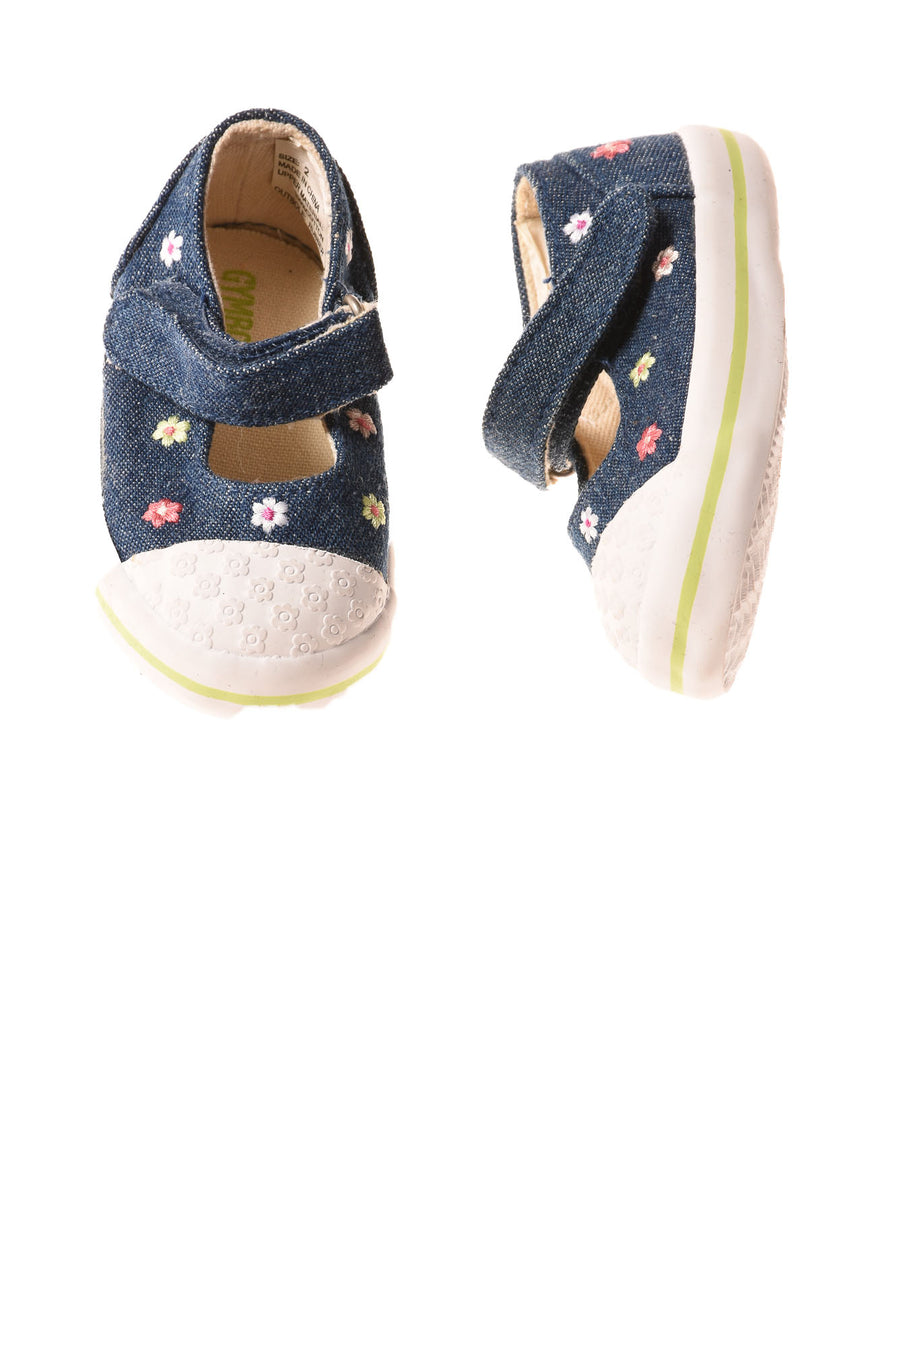 04493201d177 Baby Shoes Tagged